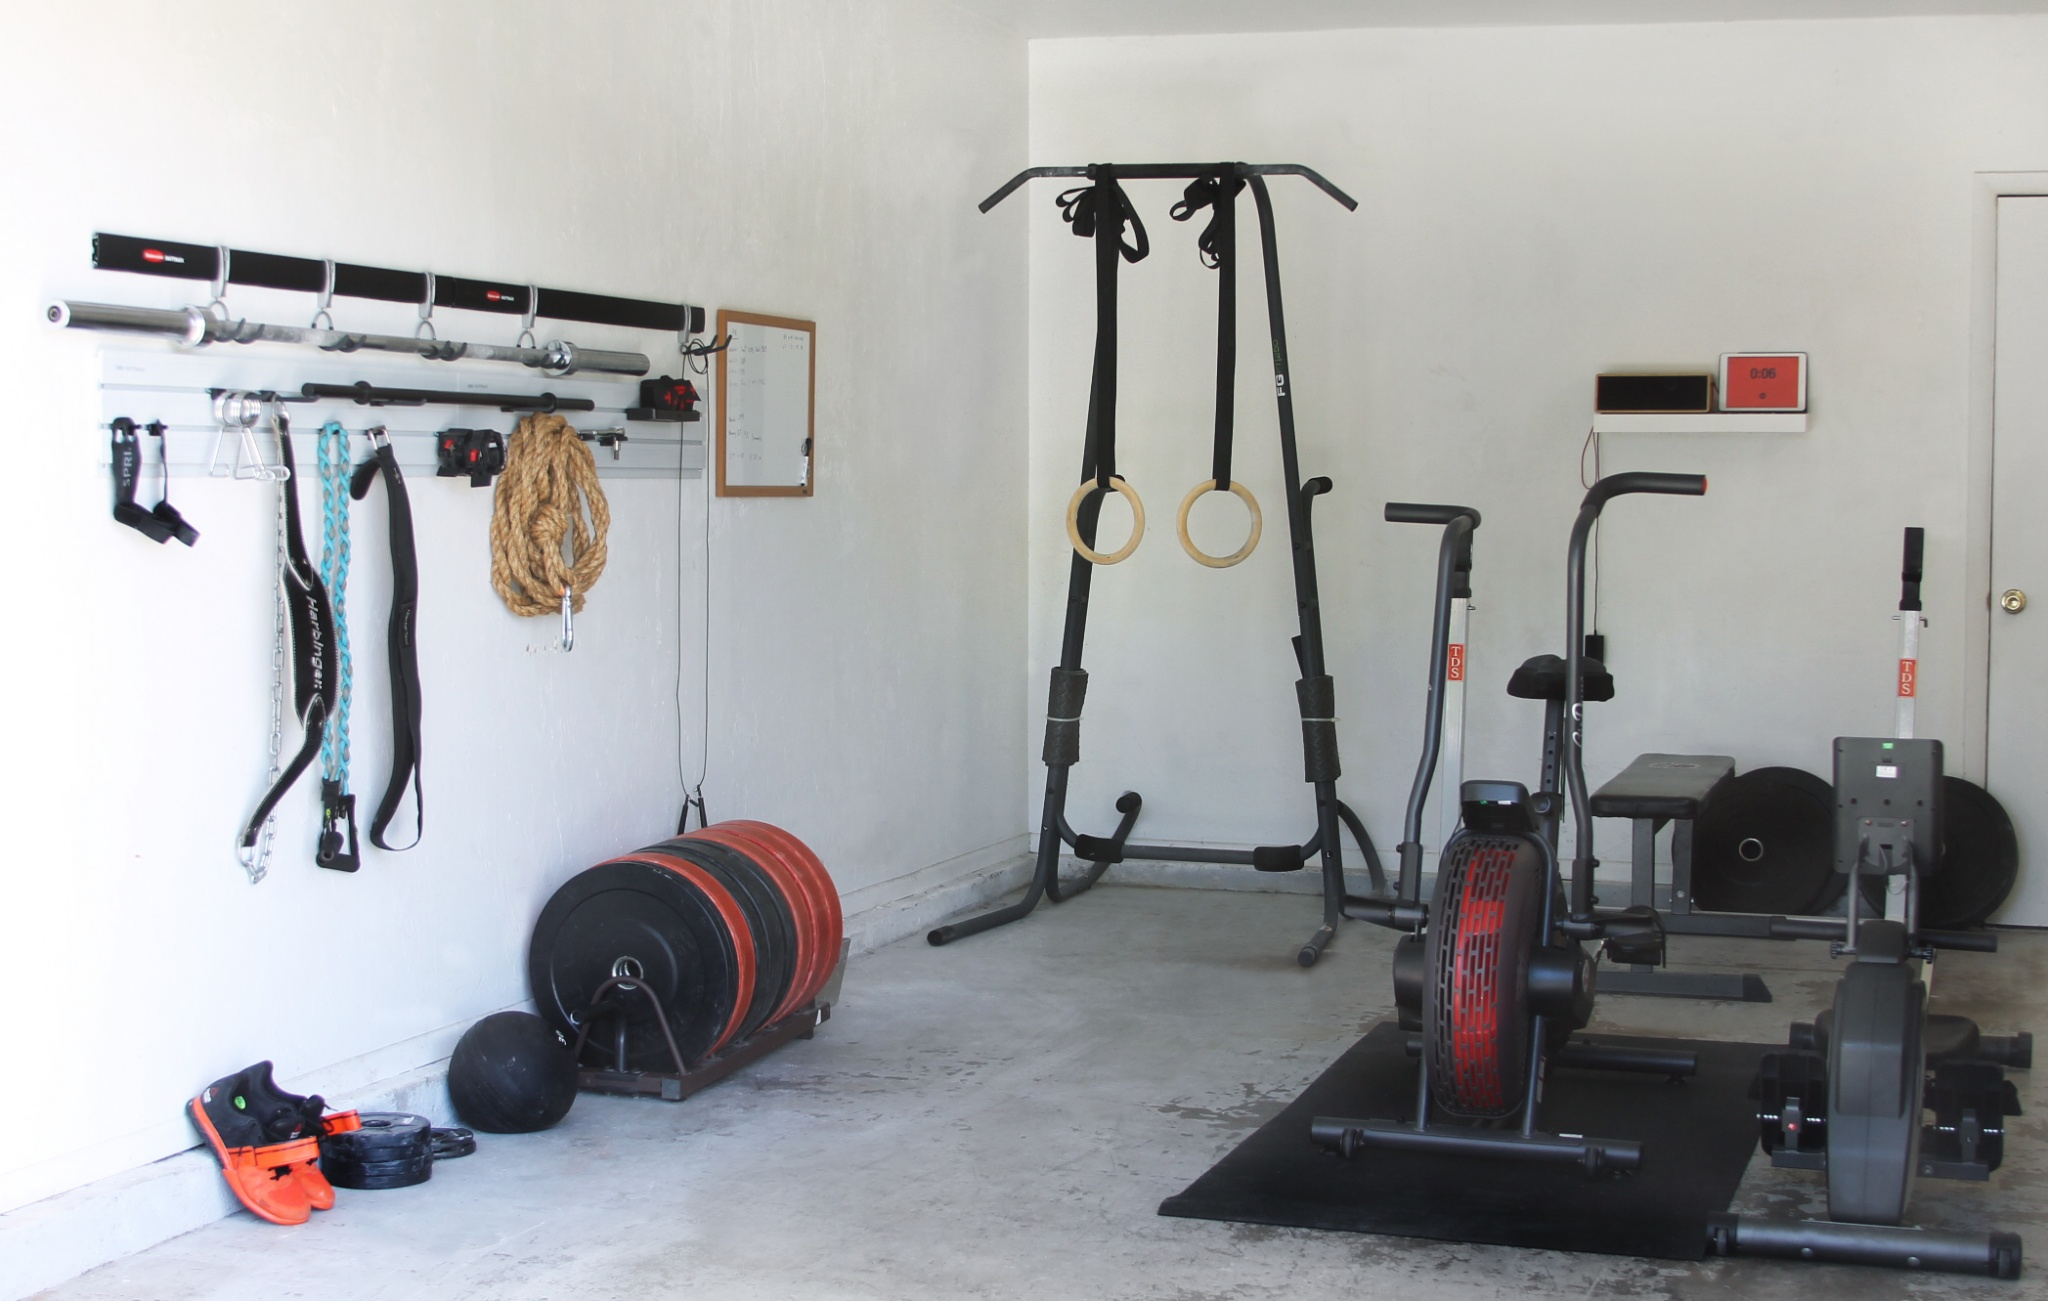 Garage gym organization awesome ideas to organise your garage